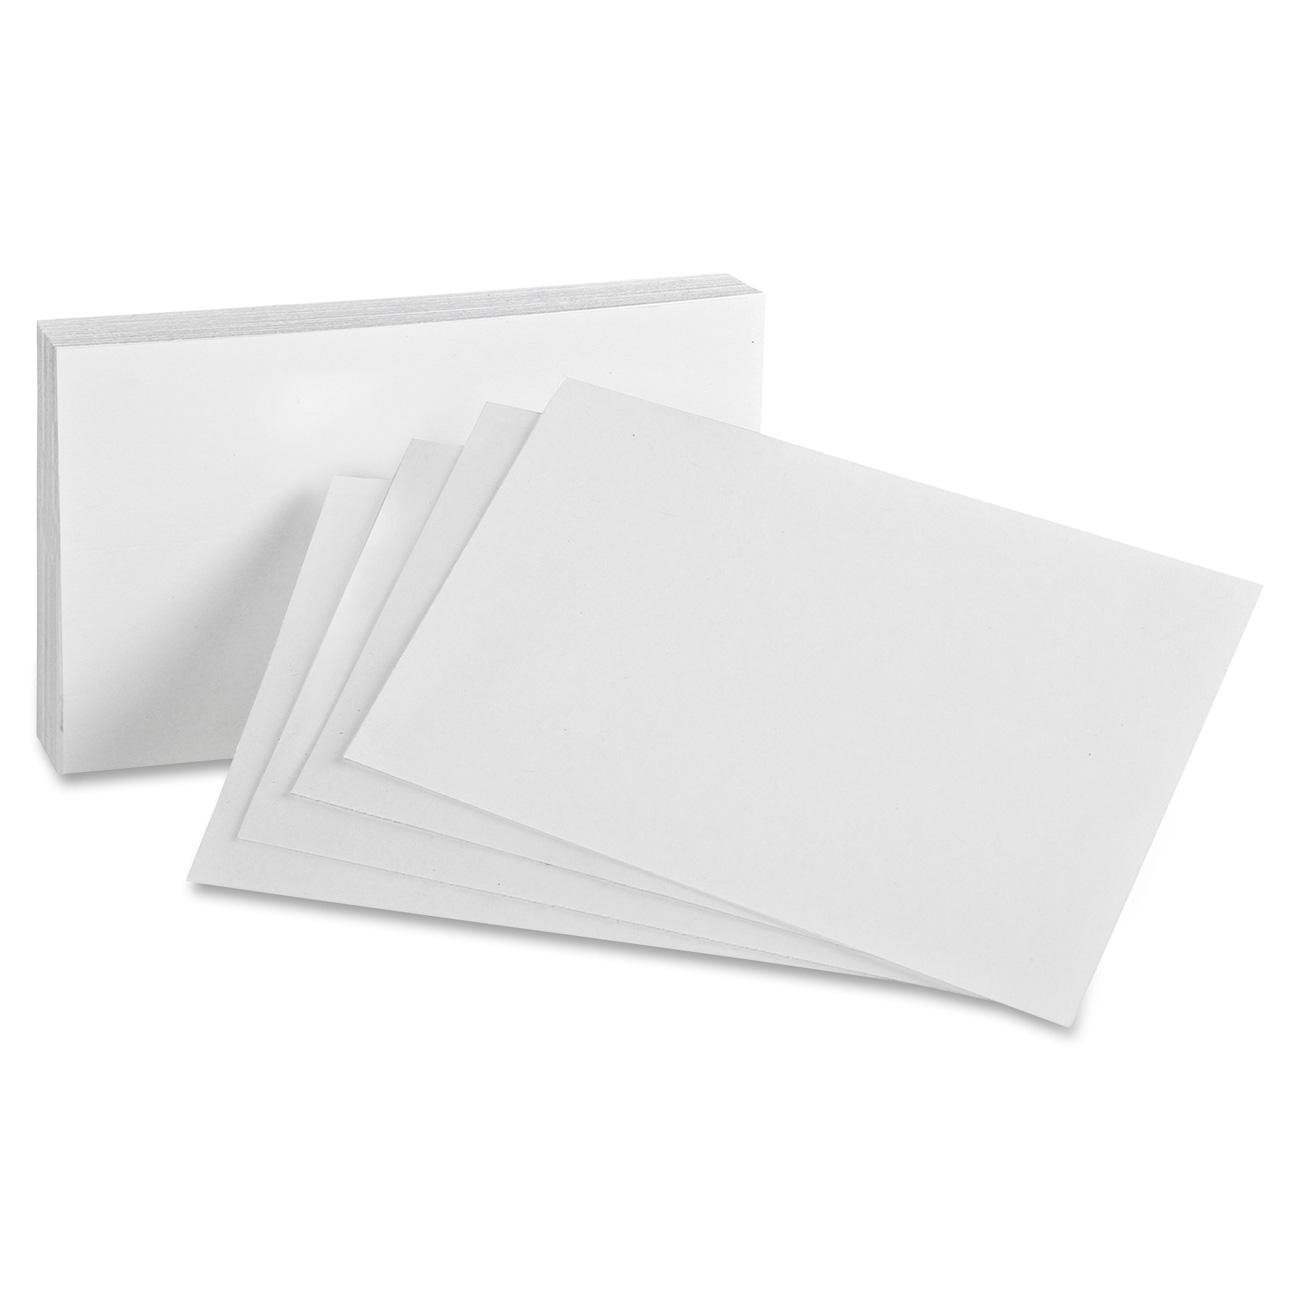 Extra Thick \ Heavy Blank Index Cards, On 14pt. 100lb Heavyweight Thick White Cover Stock. 100 Cards Per Pack (4 X 6) Superfine Printing Inc.